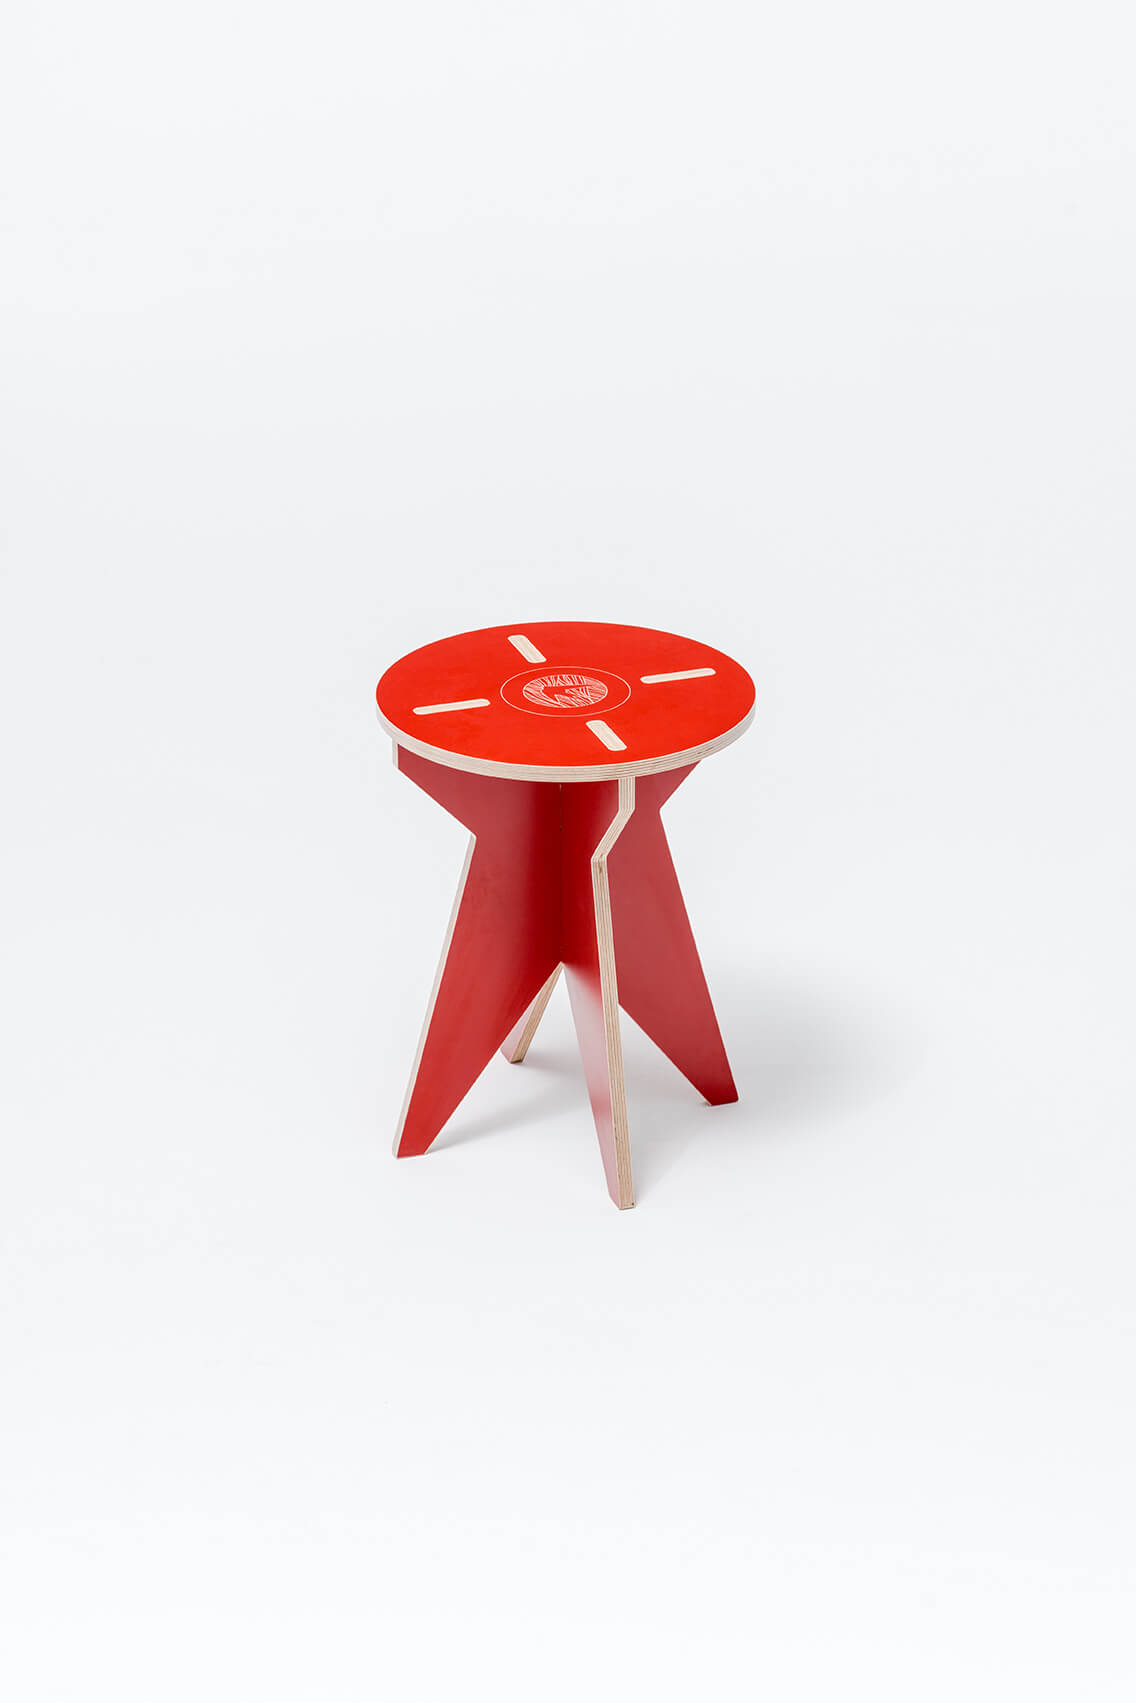 st-stool-swallow-tail-furniture-red-2